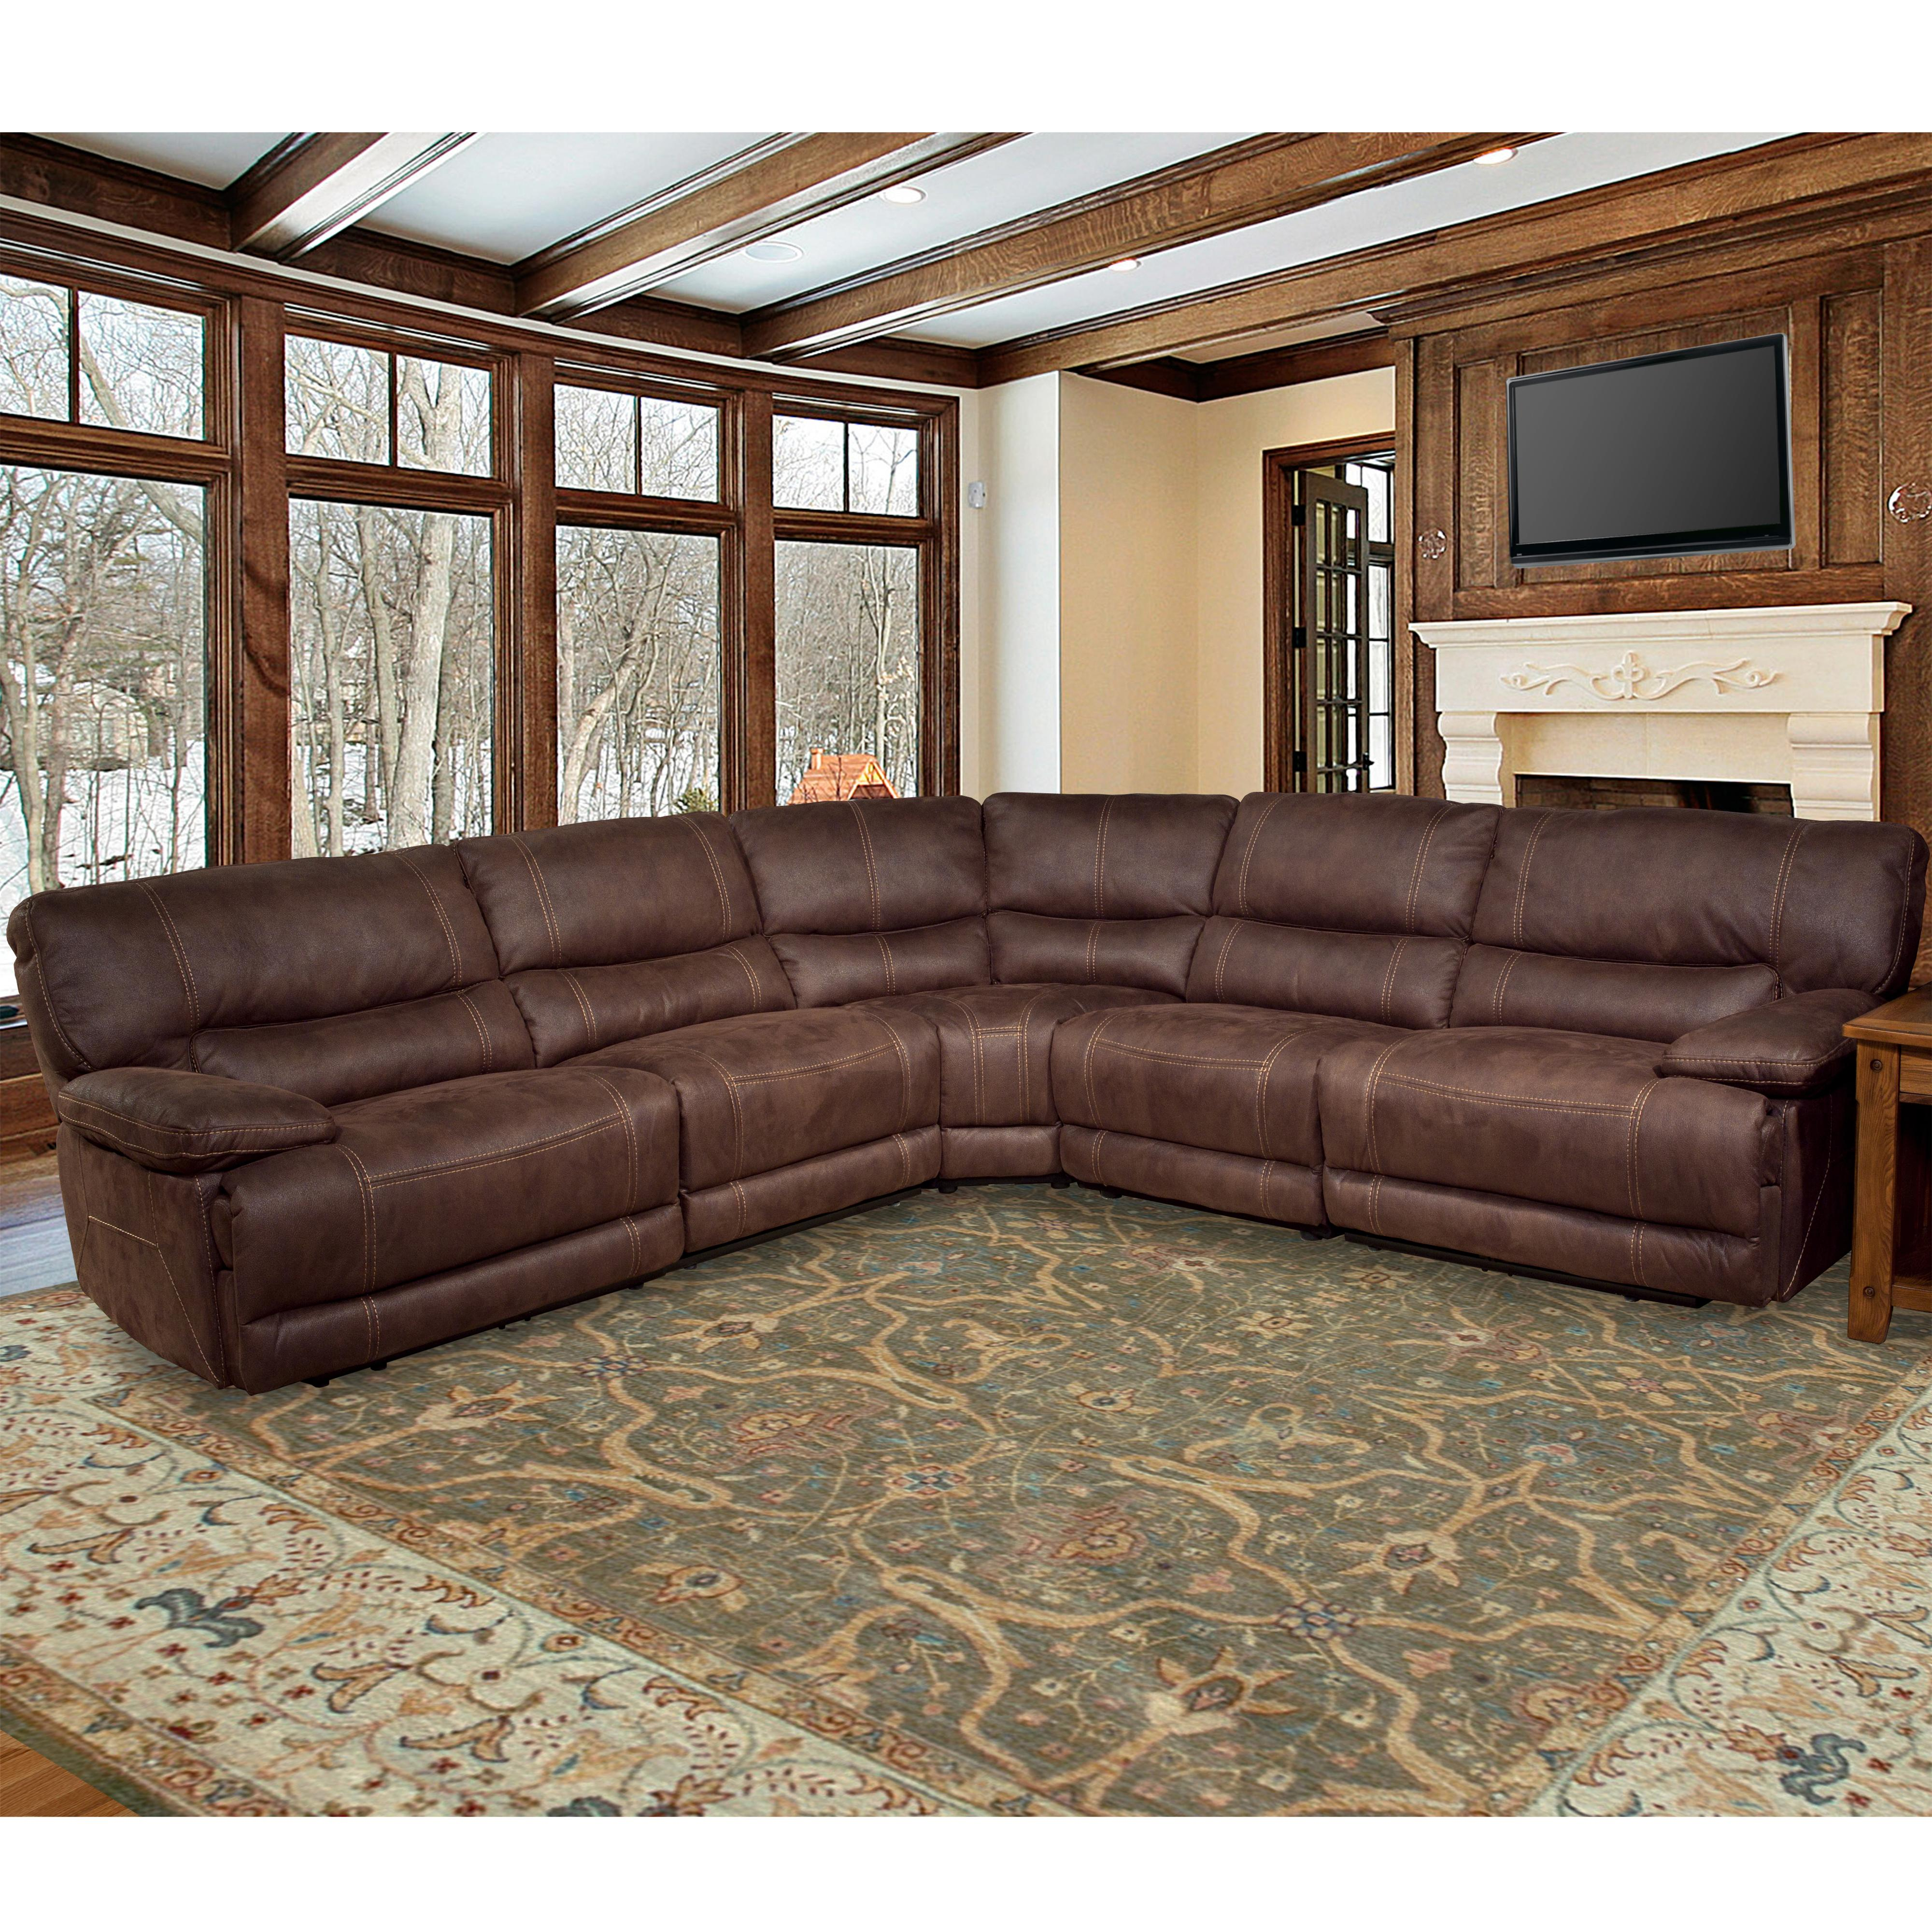 Parker Living Pegasus Power Reclining Sectional Sofa - Item Number: MPEG811LP+811RP+810+840+850-DK